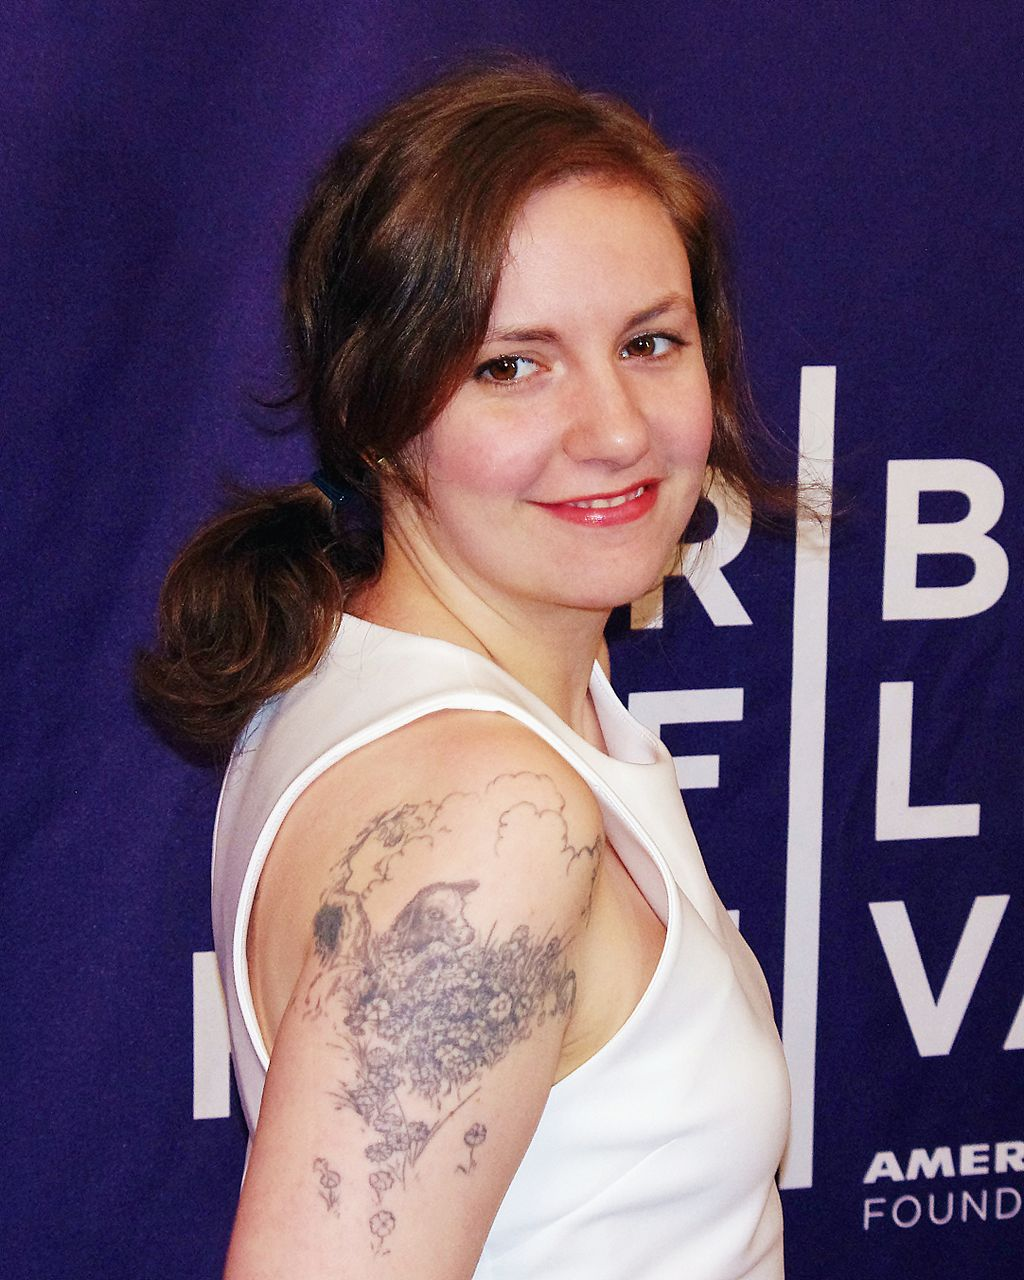 It's Not About Lena Dunham's Choice; It Never Has Been